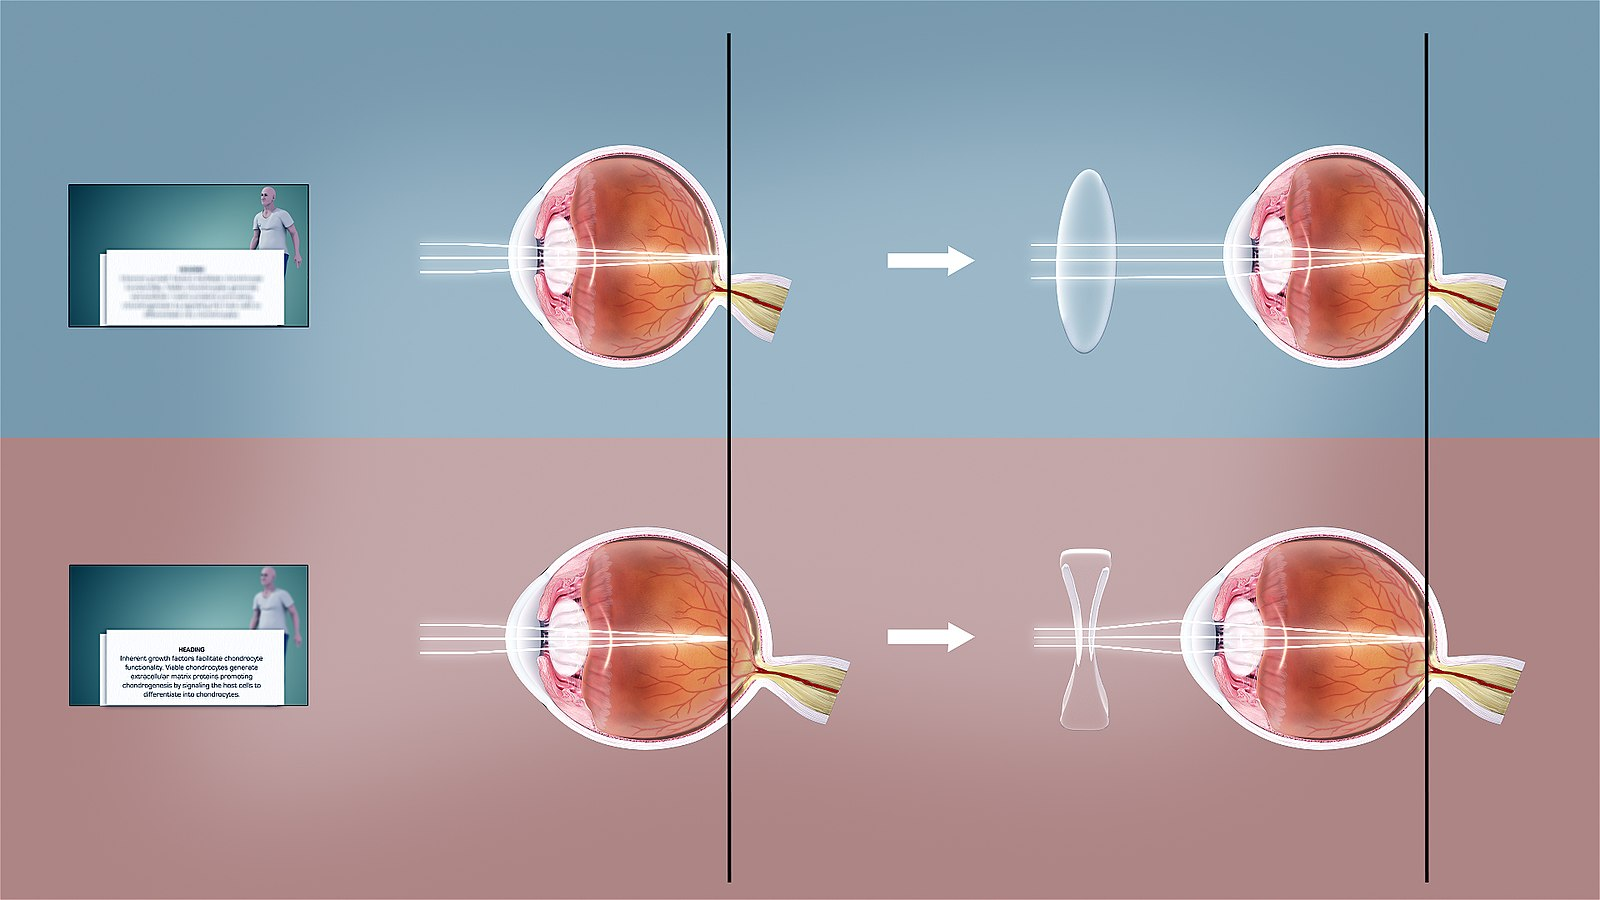 showcase of how the light enters the eye and how an incorrect entrance of the eye lead to farsightedness.